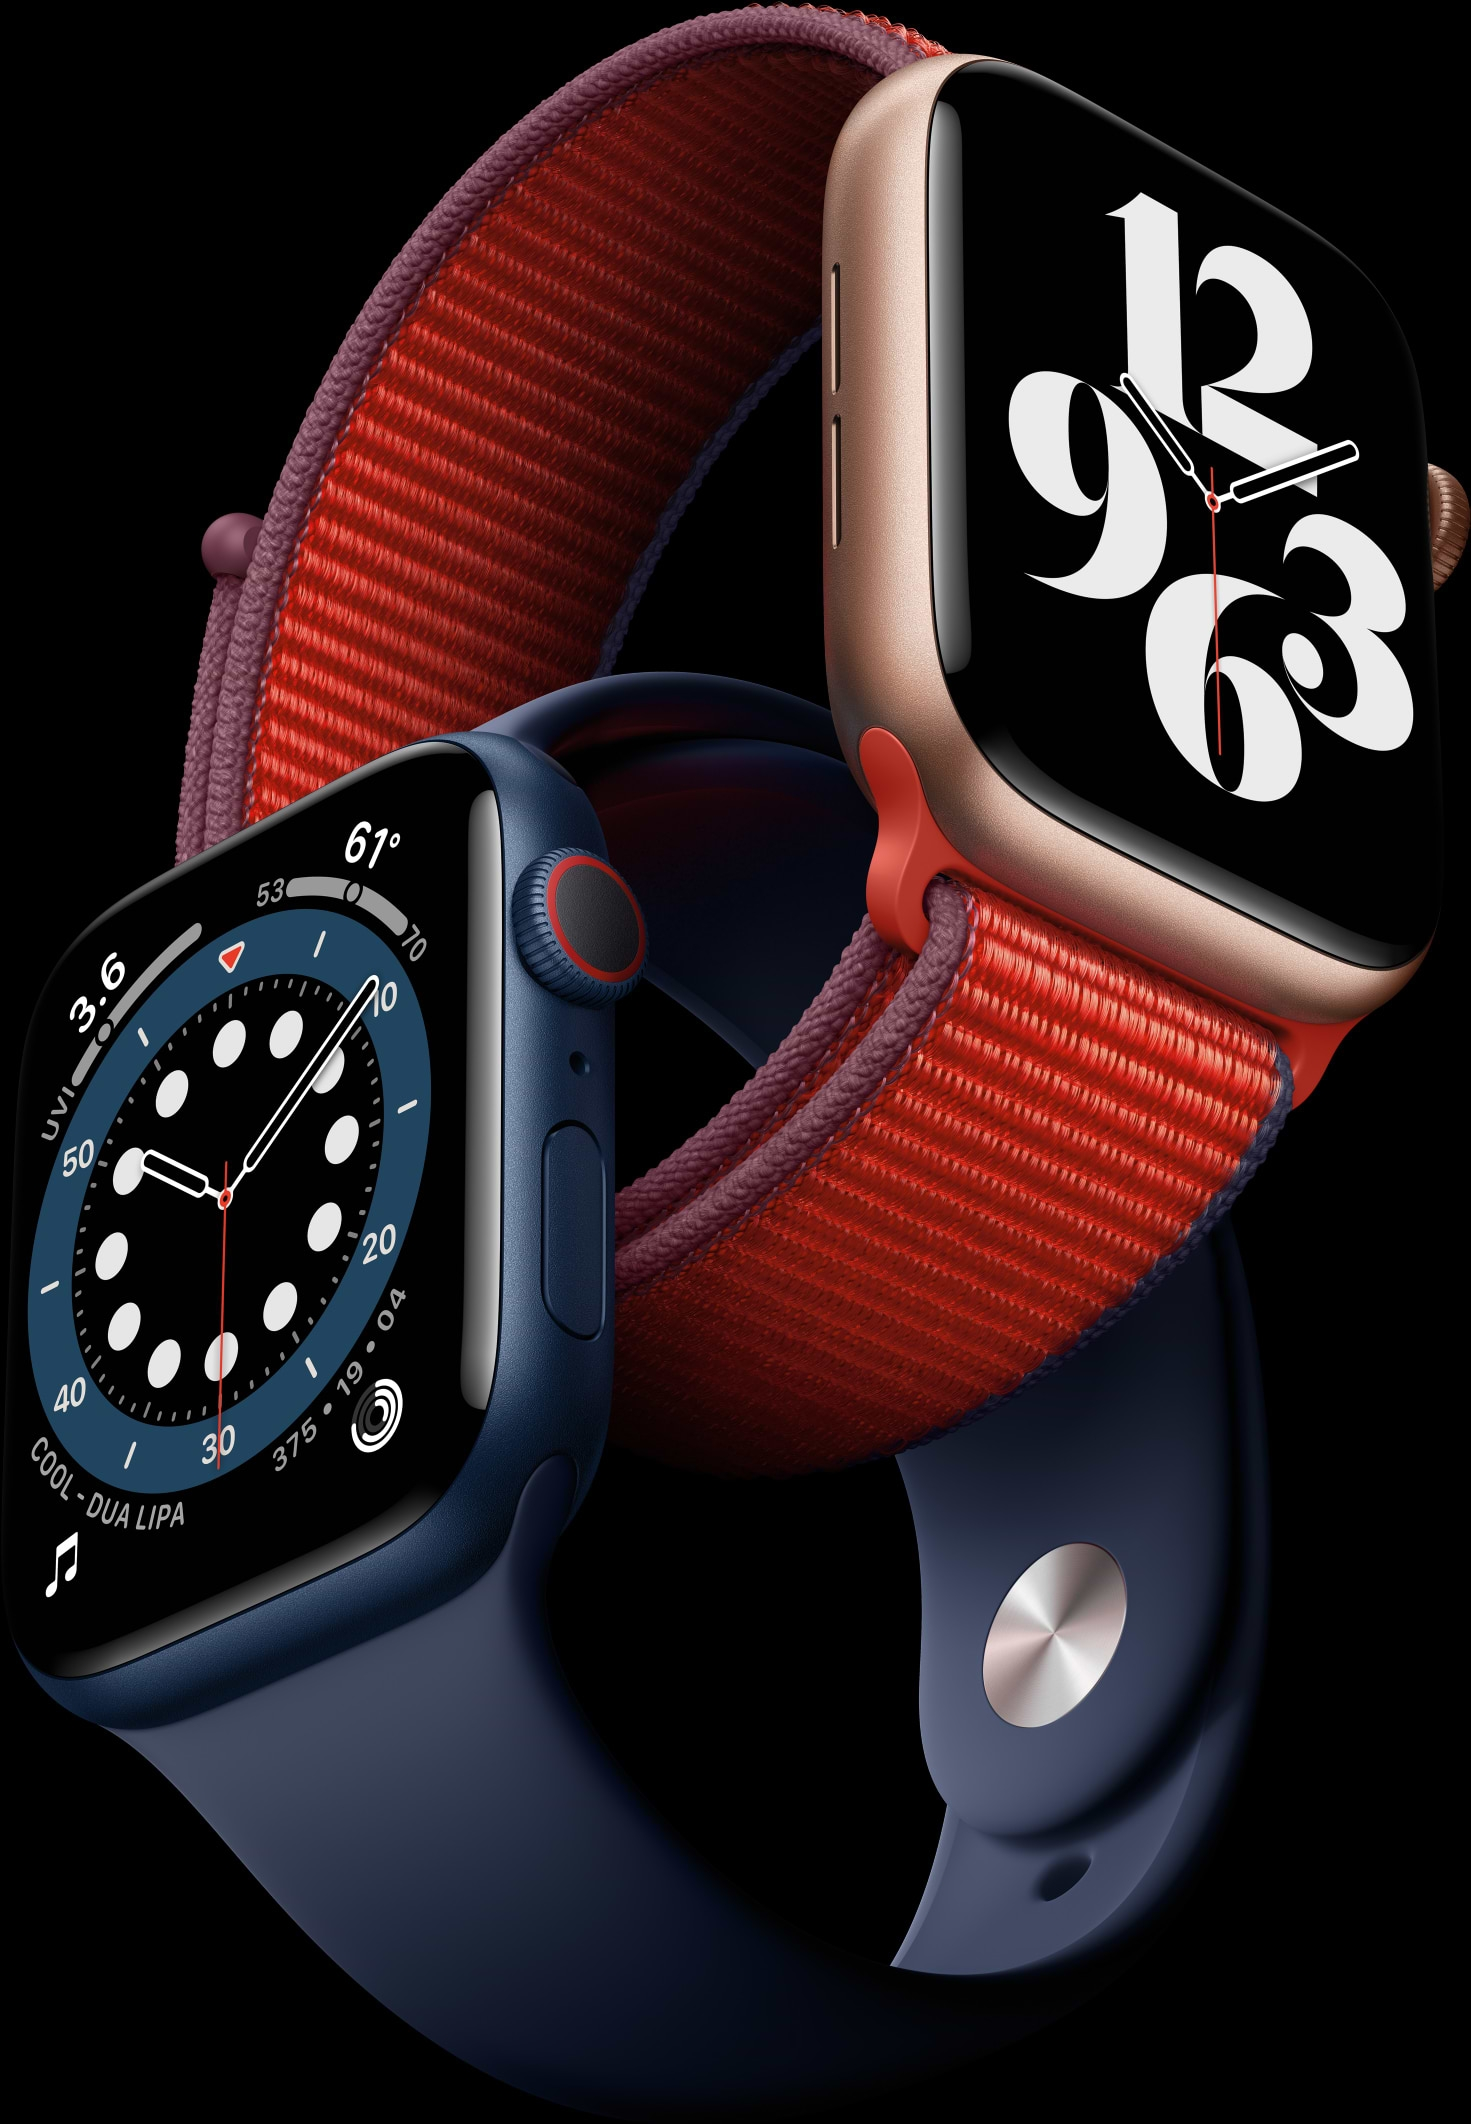 Apple Watch Series 6 (Hero Image)